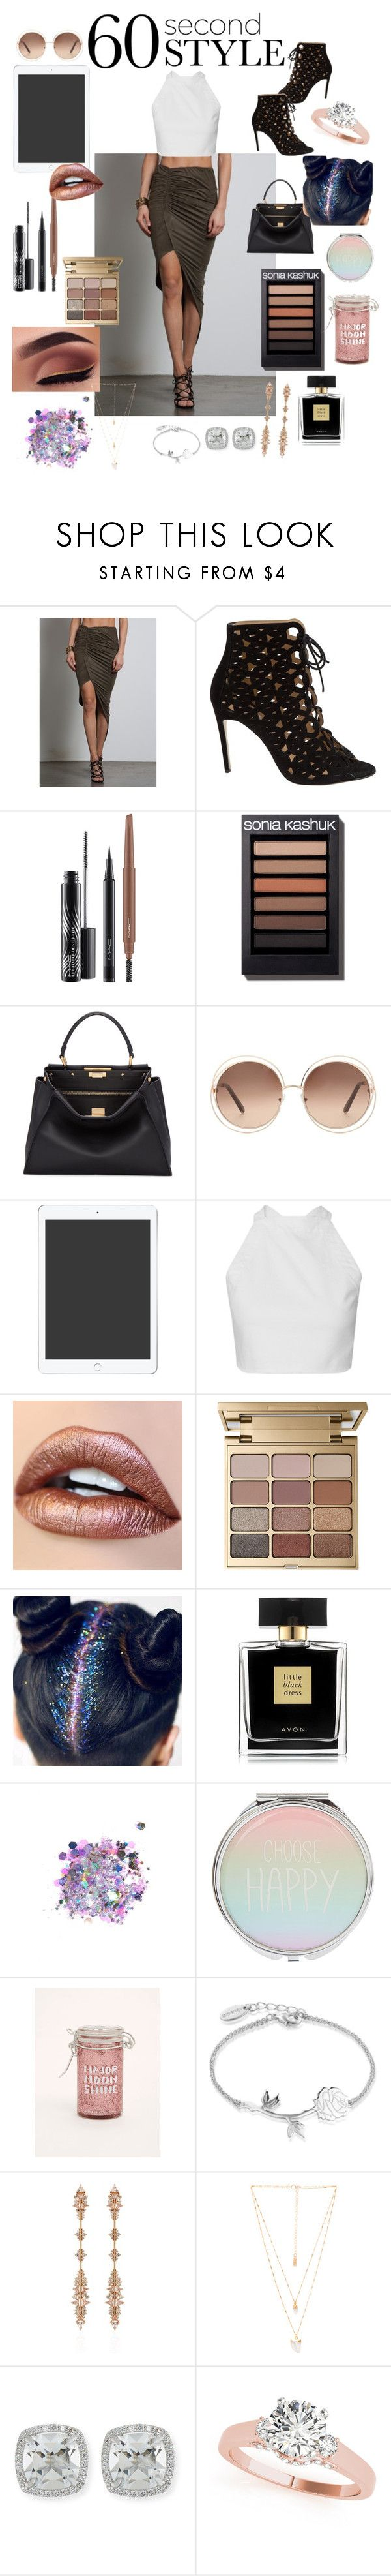 """037"" by cl0wds ❤ liked on Polyvore featuring Sans Souci, Bionda Castana, MAC Cosmetics, Fendi, Chloé, Stila, Avon, The Gypsy Shrine, Torrid and Disney"